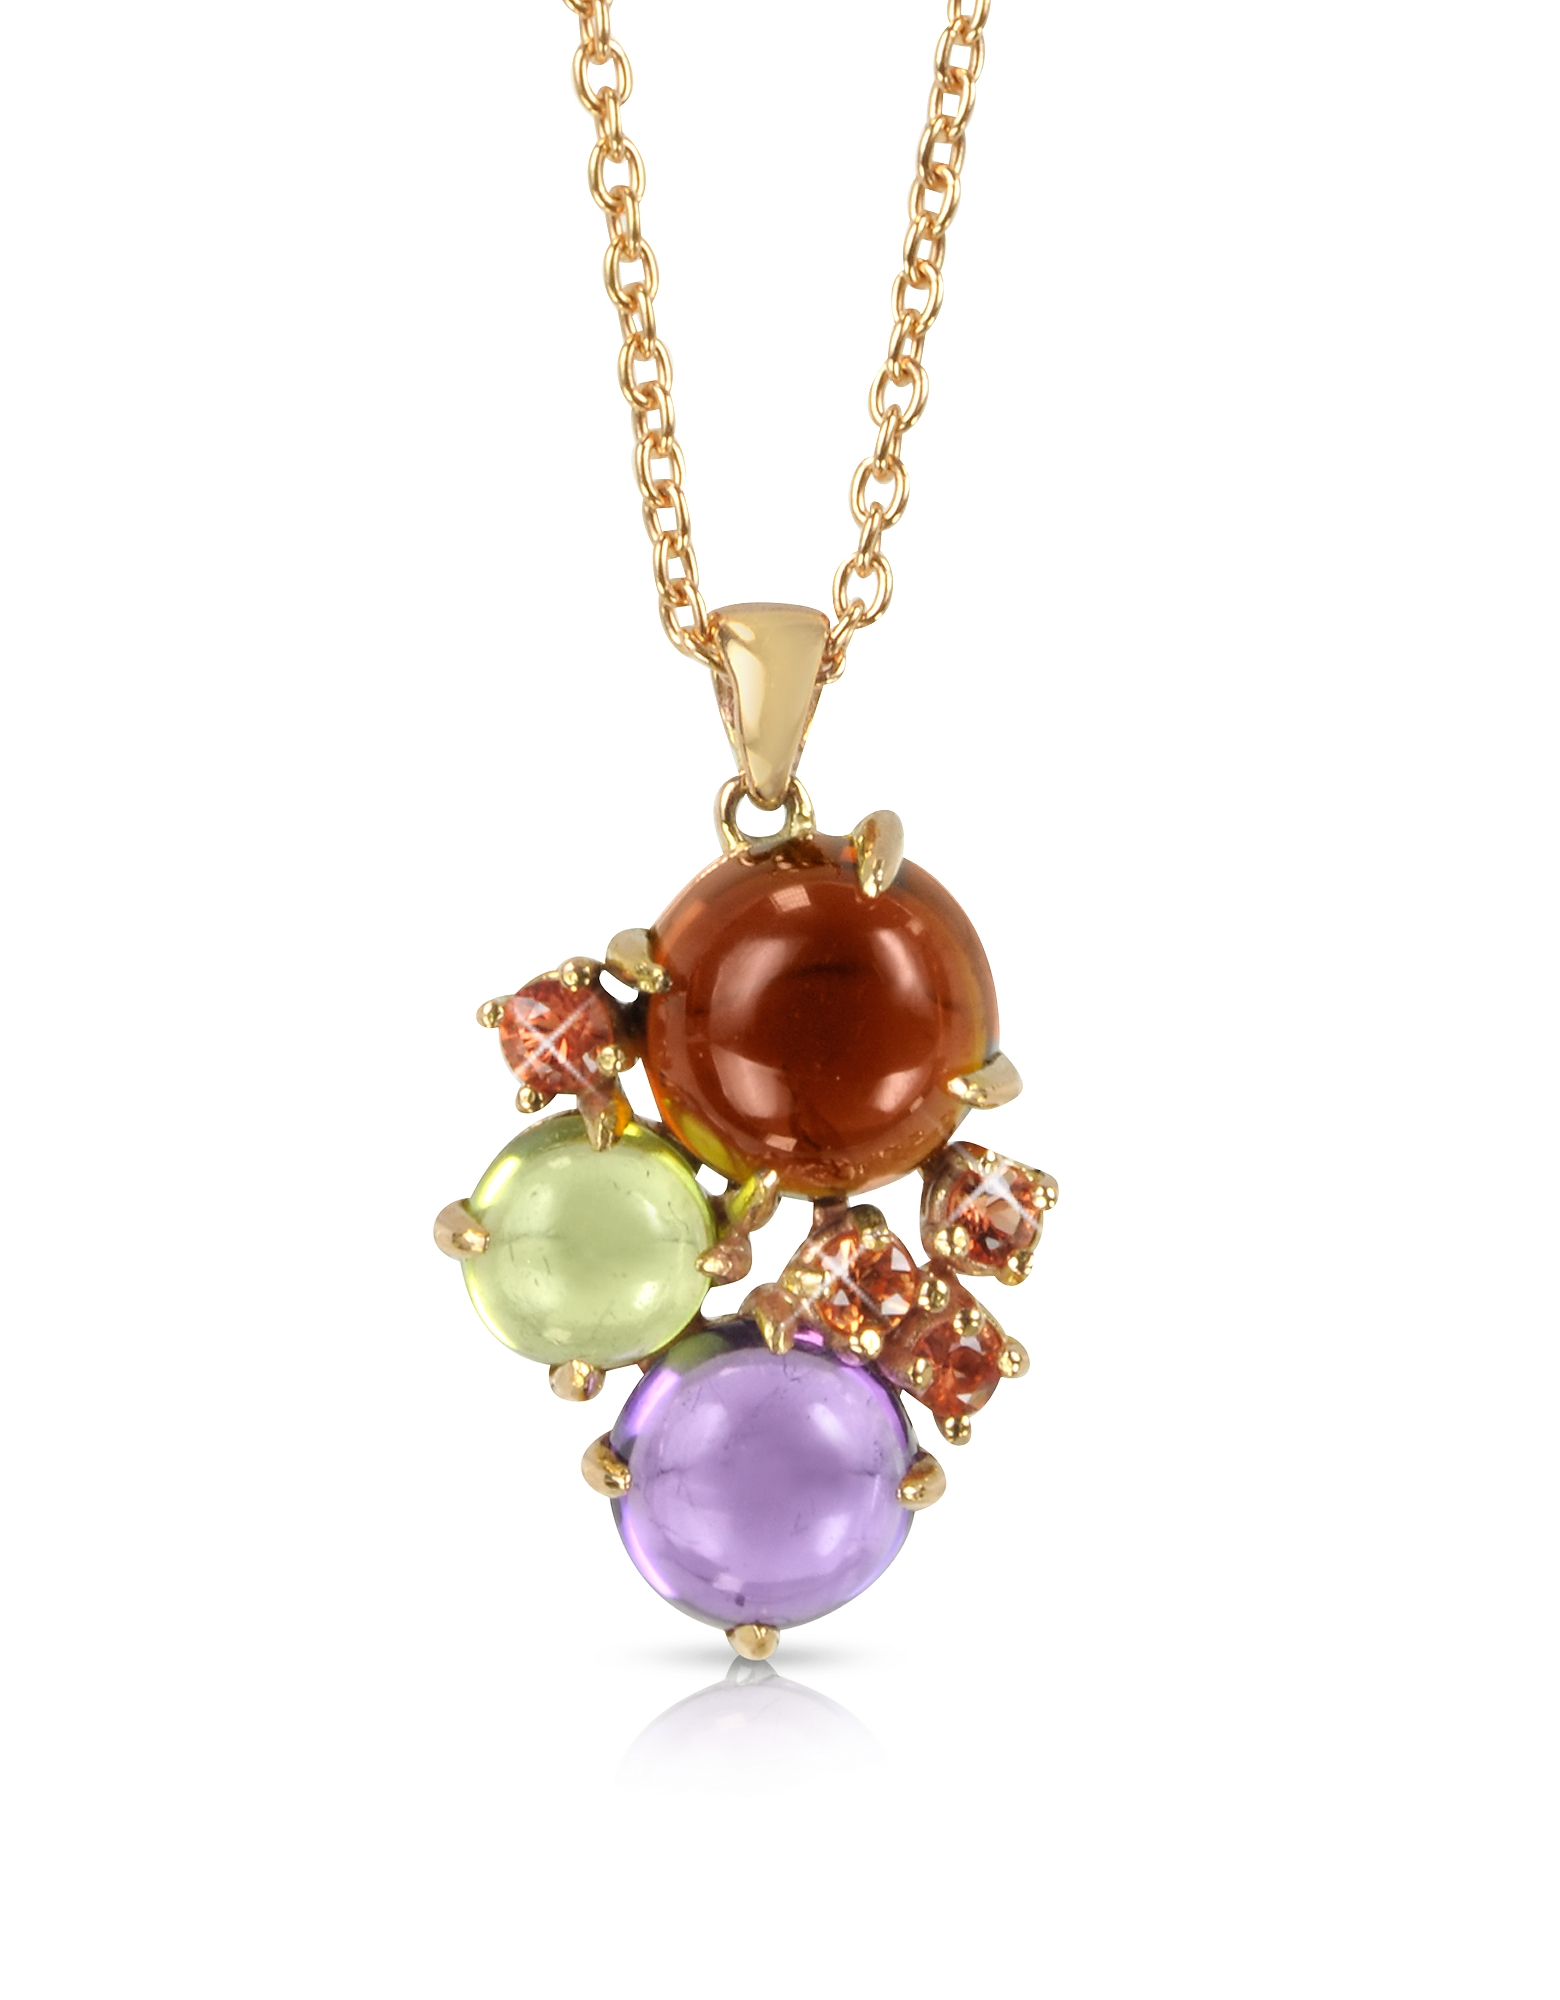 Mia & Beverly Necklaces, Gemstones 18K Rose Gold Pendant Necklace